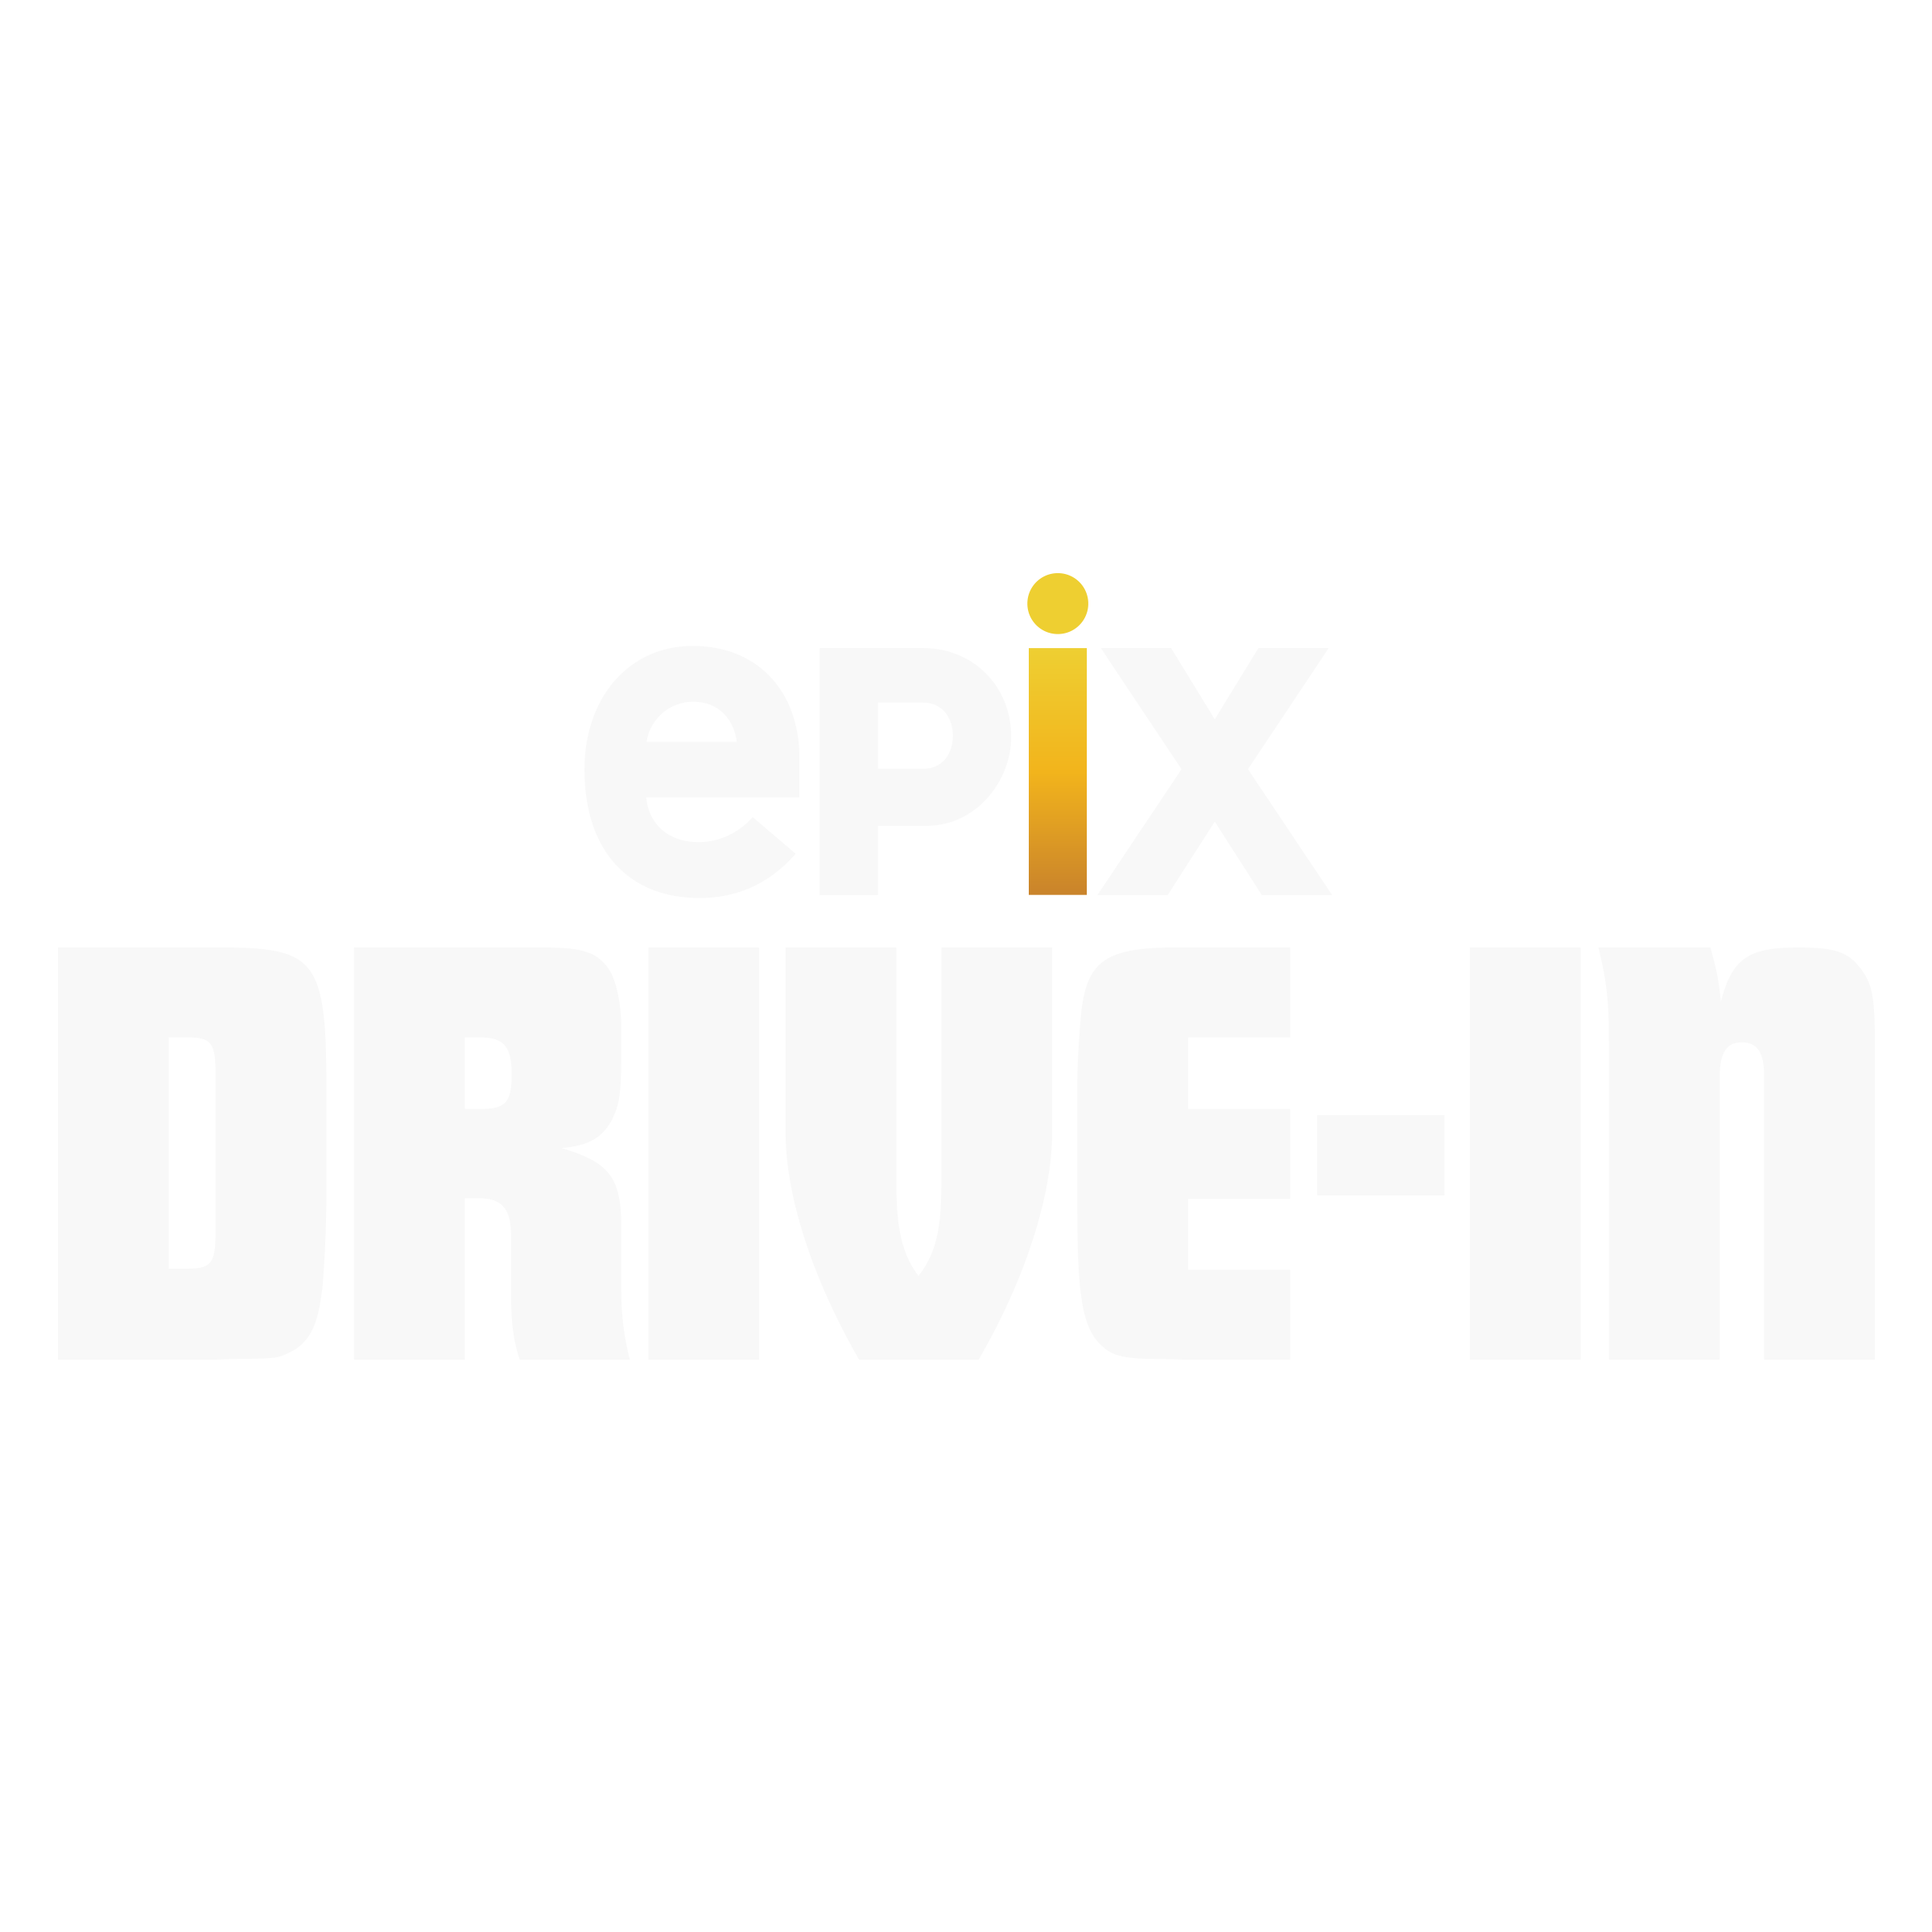 epix drive-in - tv listings guide